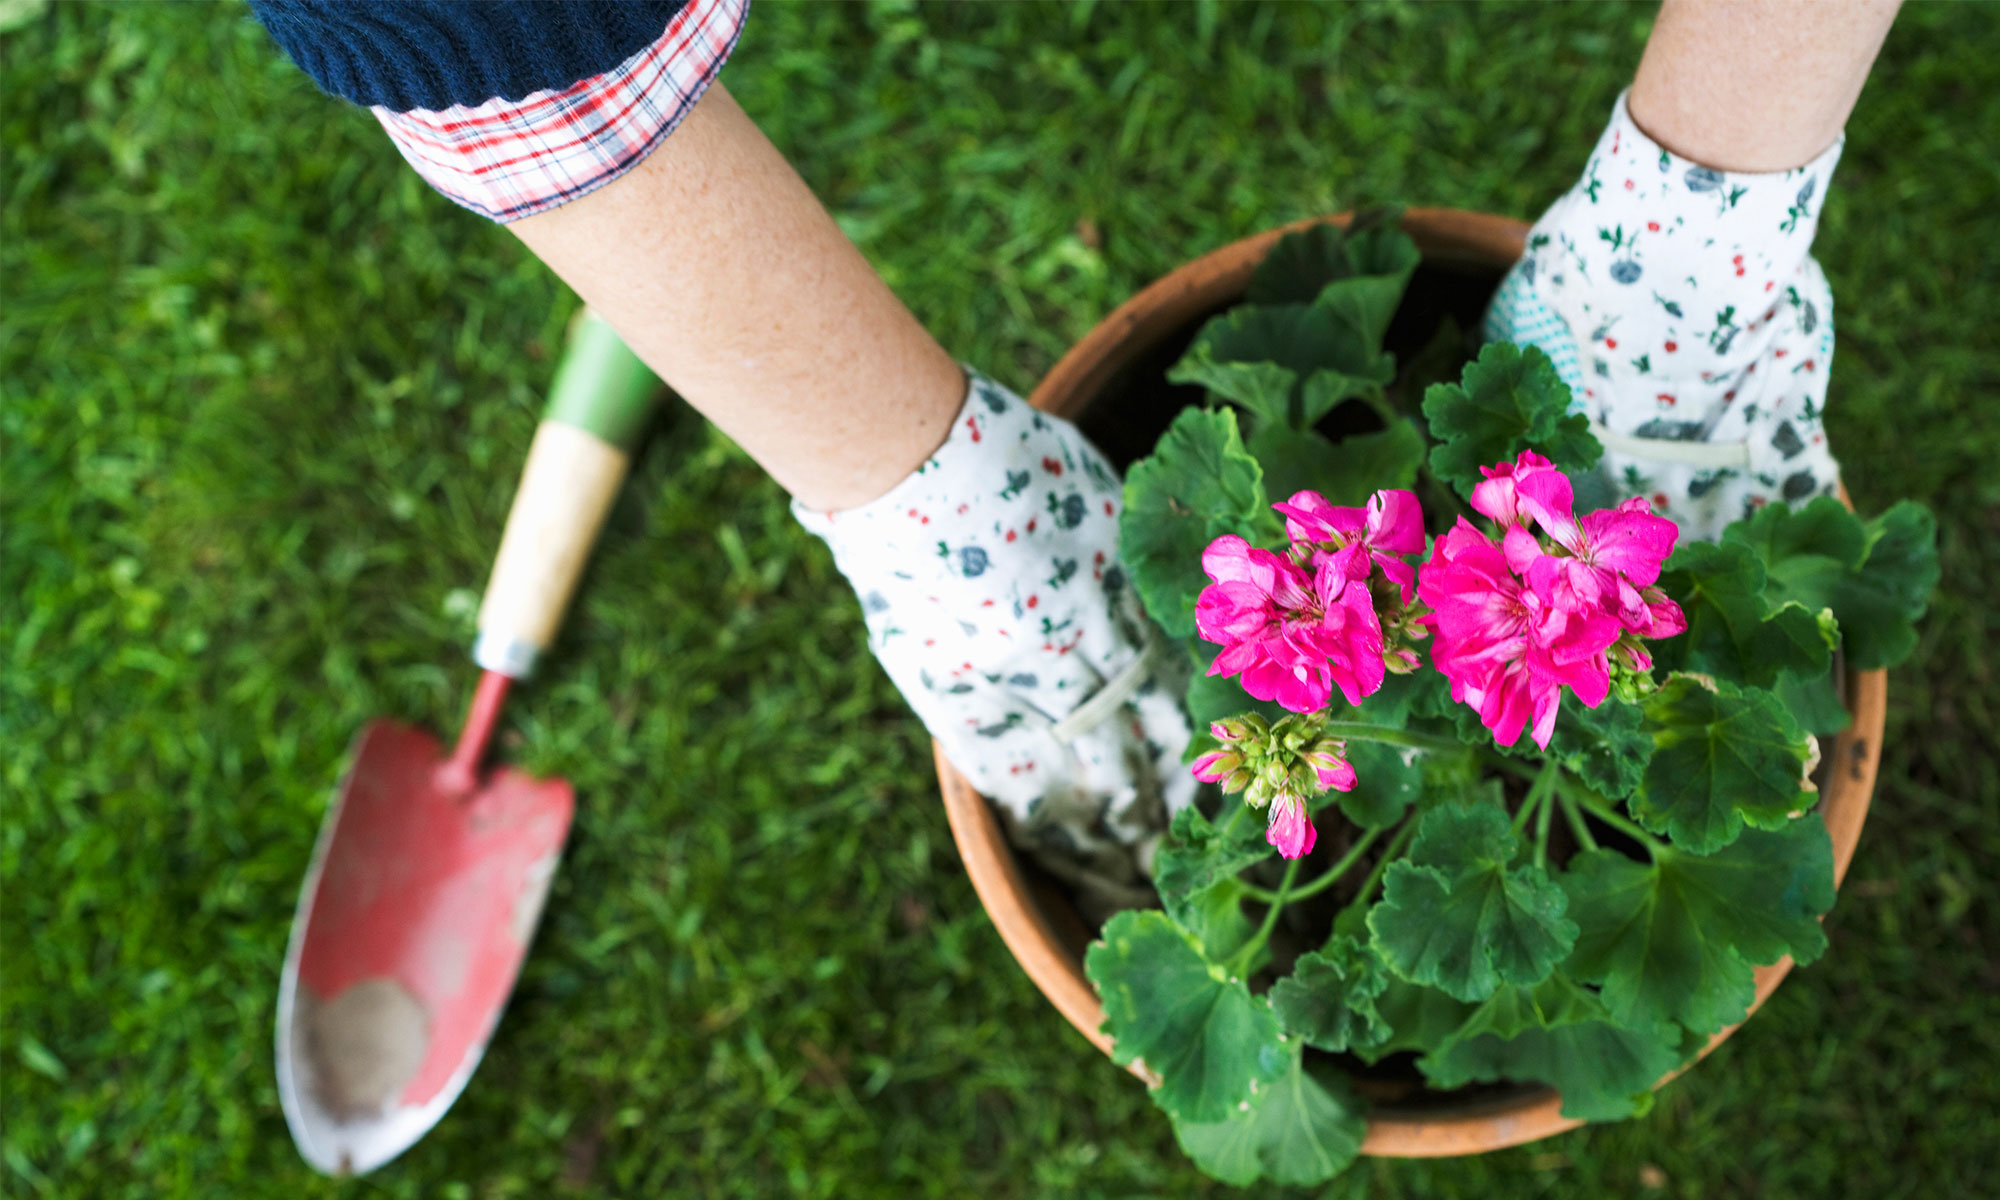 The hands of a woman setting a flower in a pot.